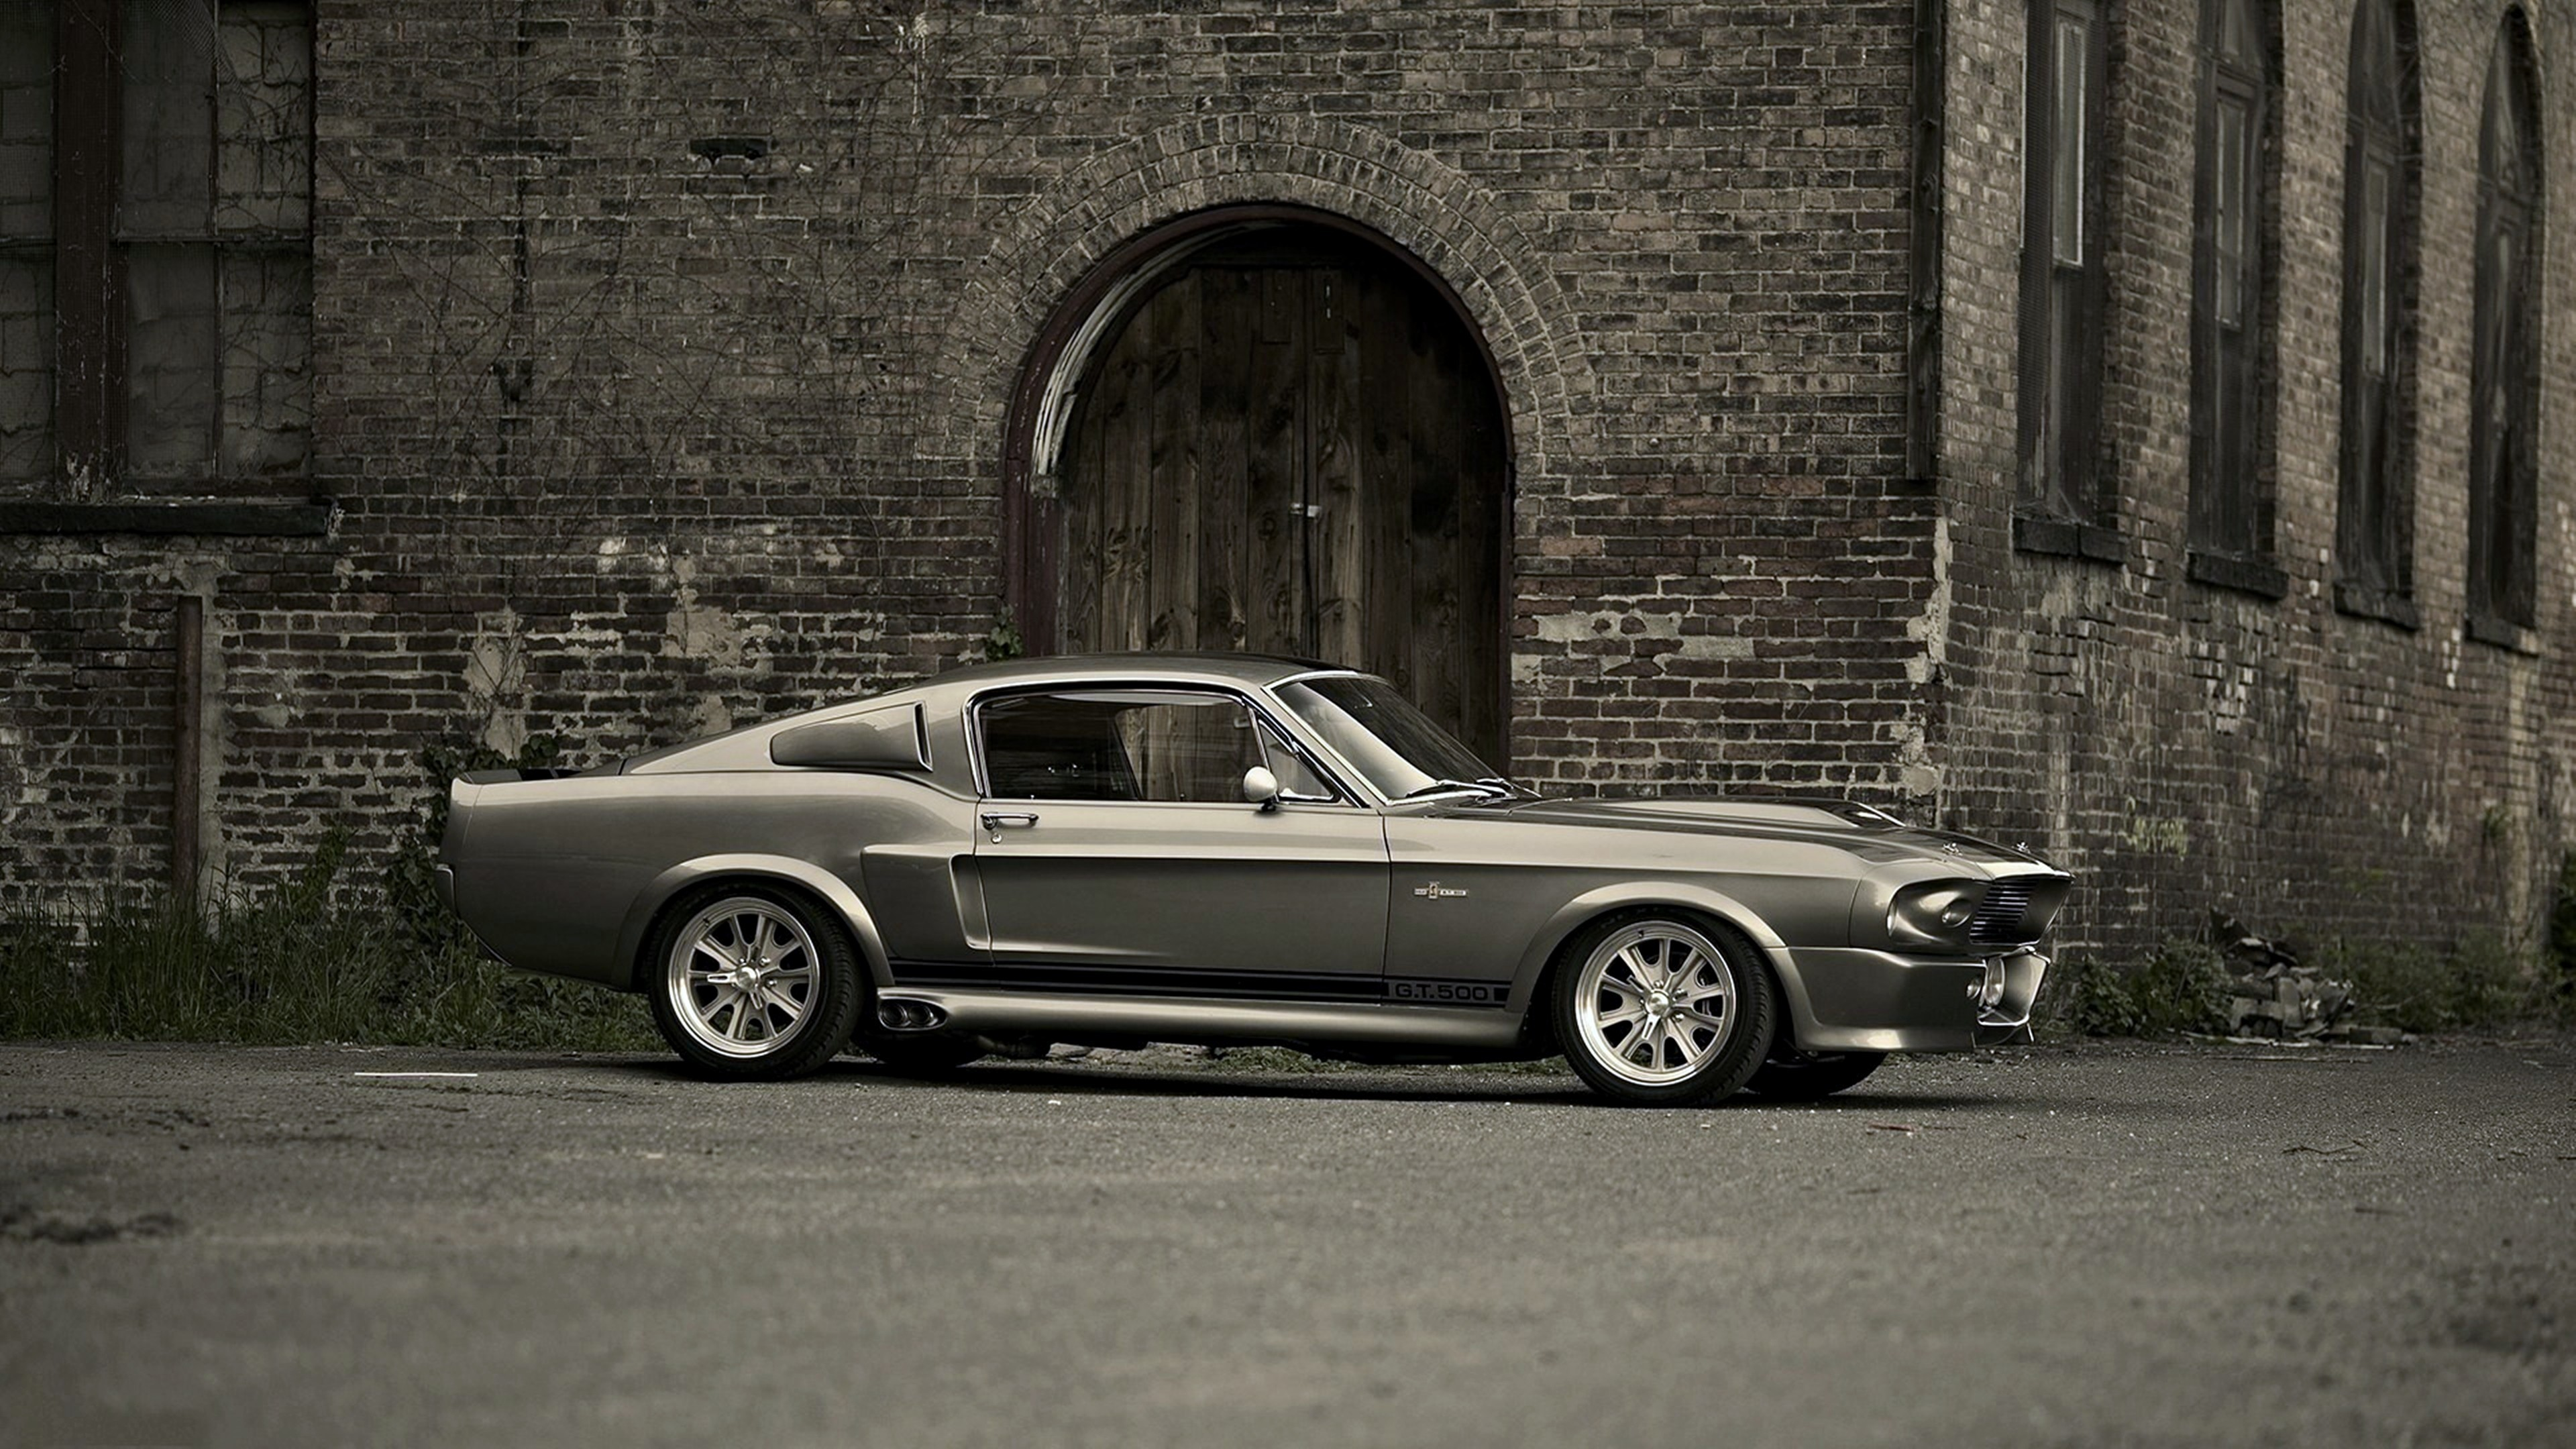 Res: 3840x2160, #Ford Mustang, #Ford Shelby GT500 wallpaper